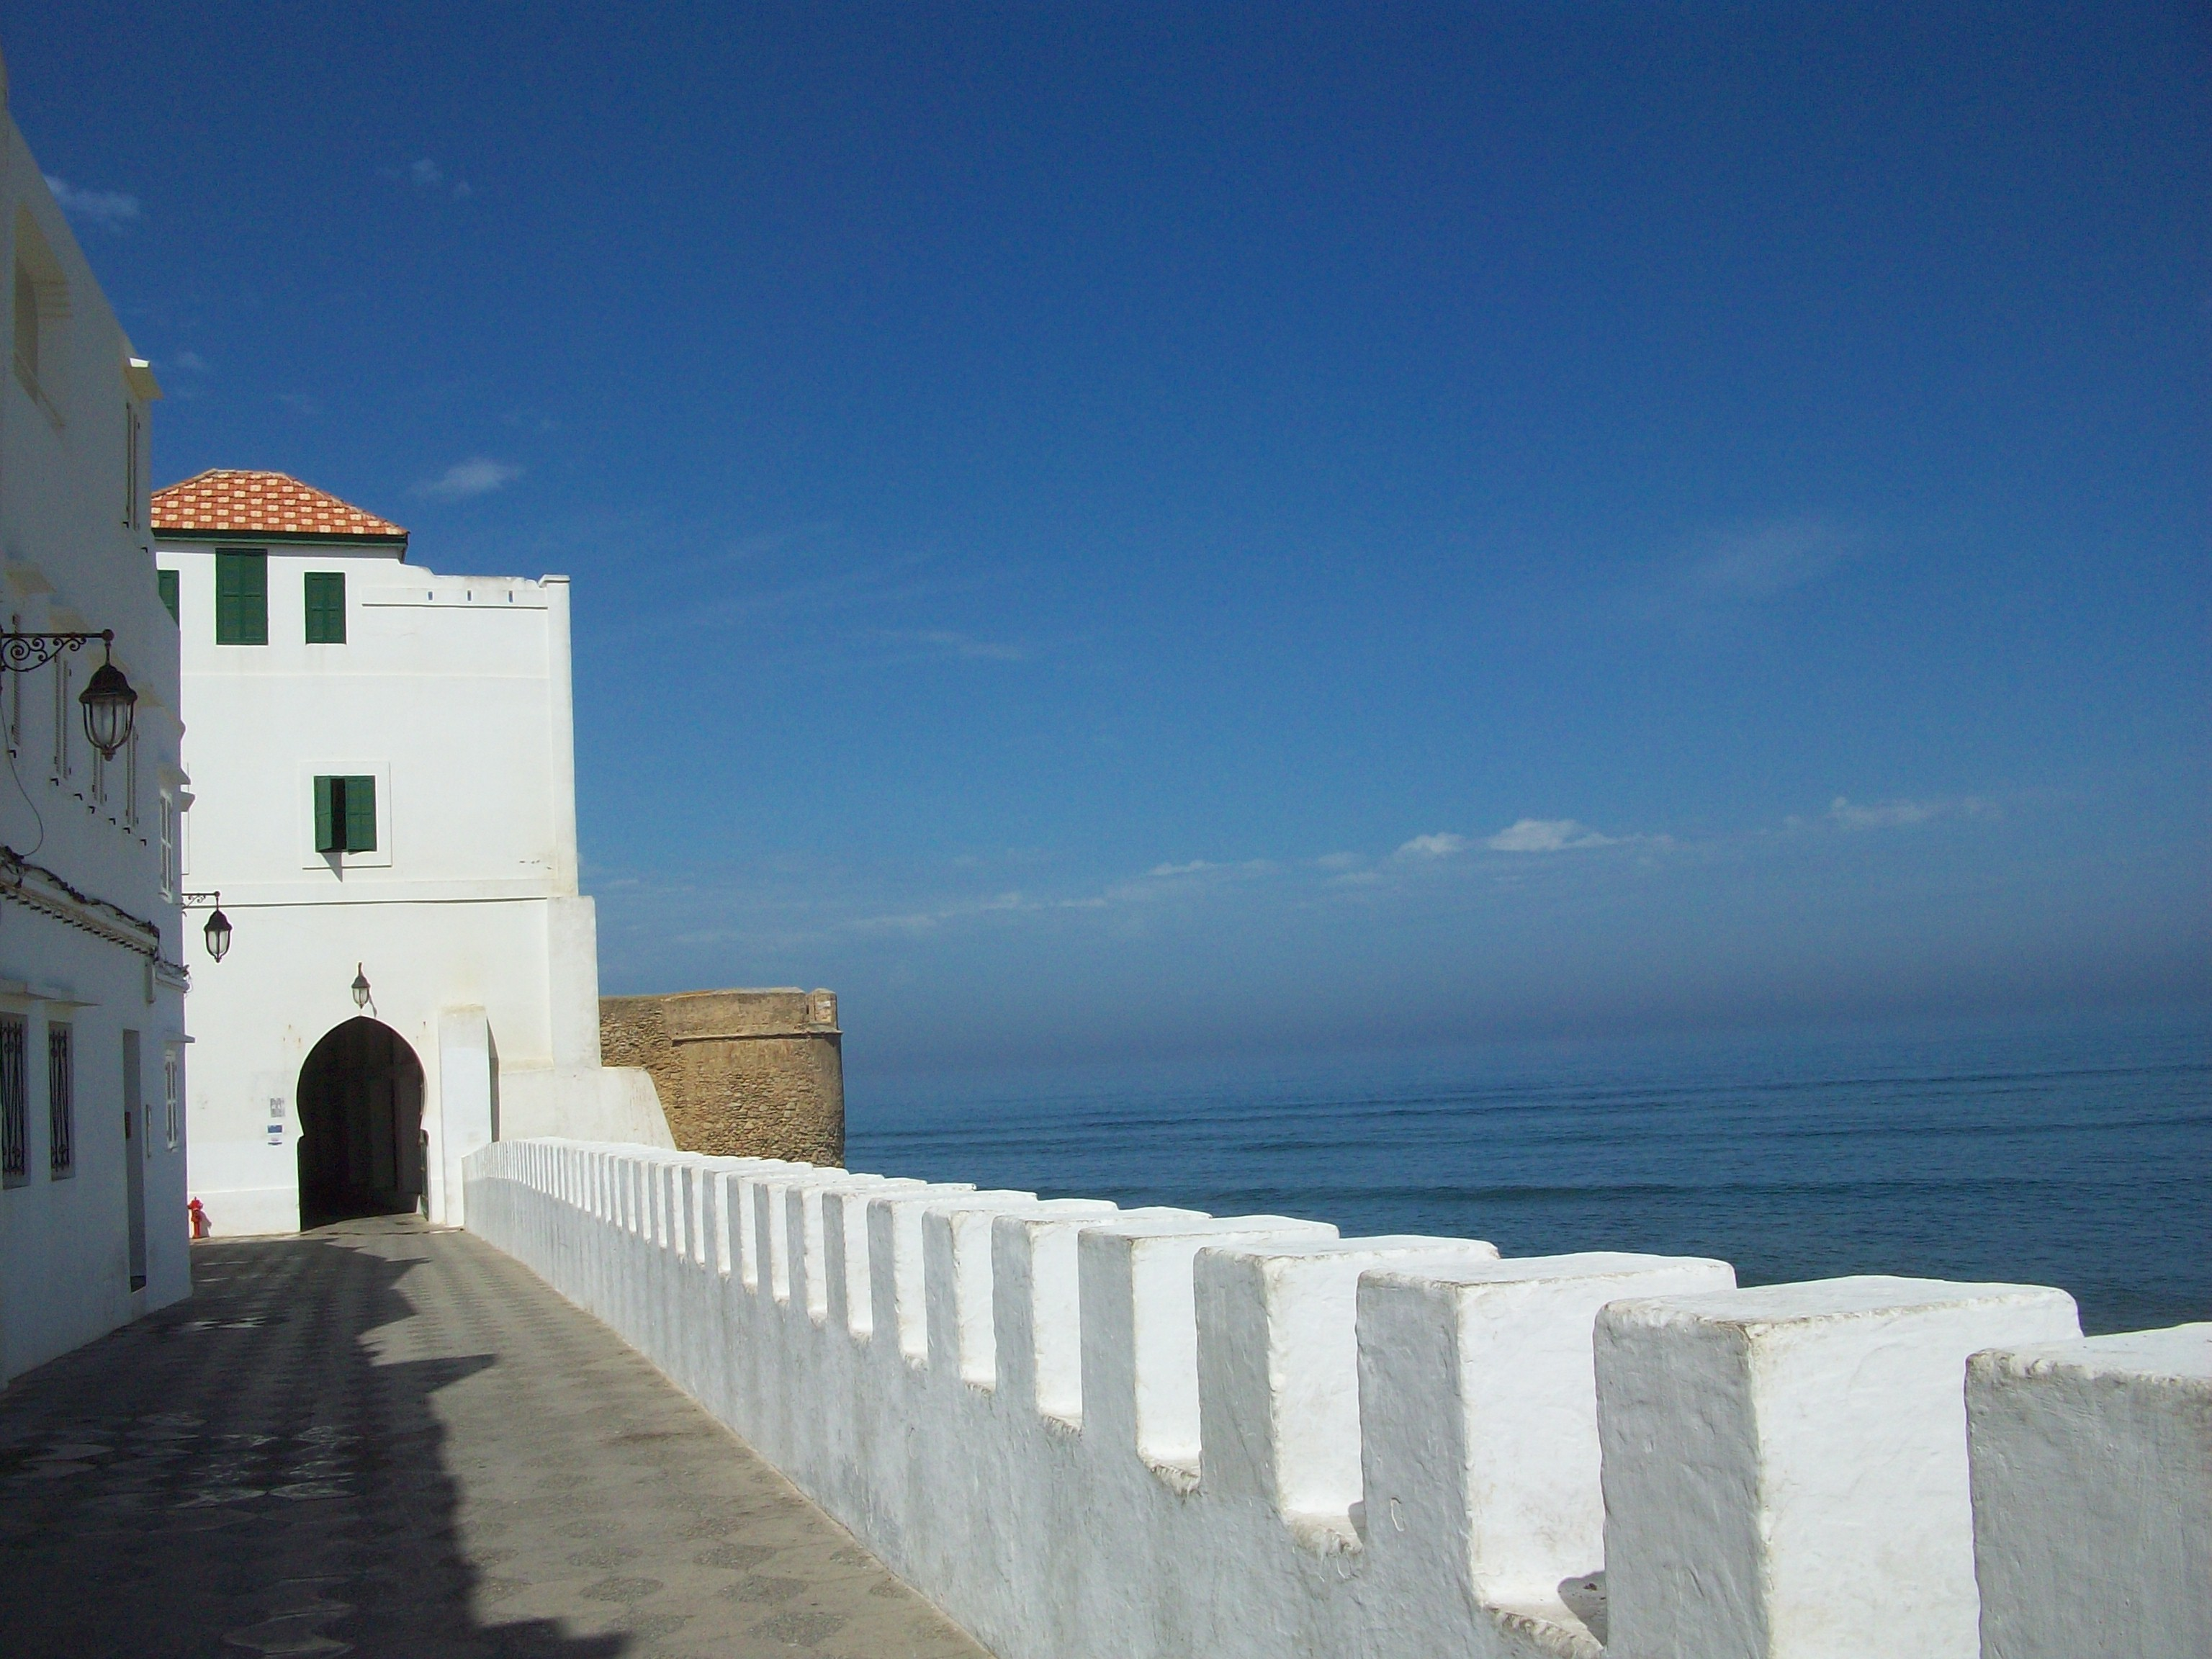 Asilah Morocco  City pictures : Assilah Waterfront1 Wikipedia, the free encyclopedia